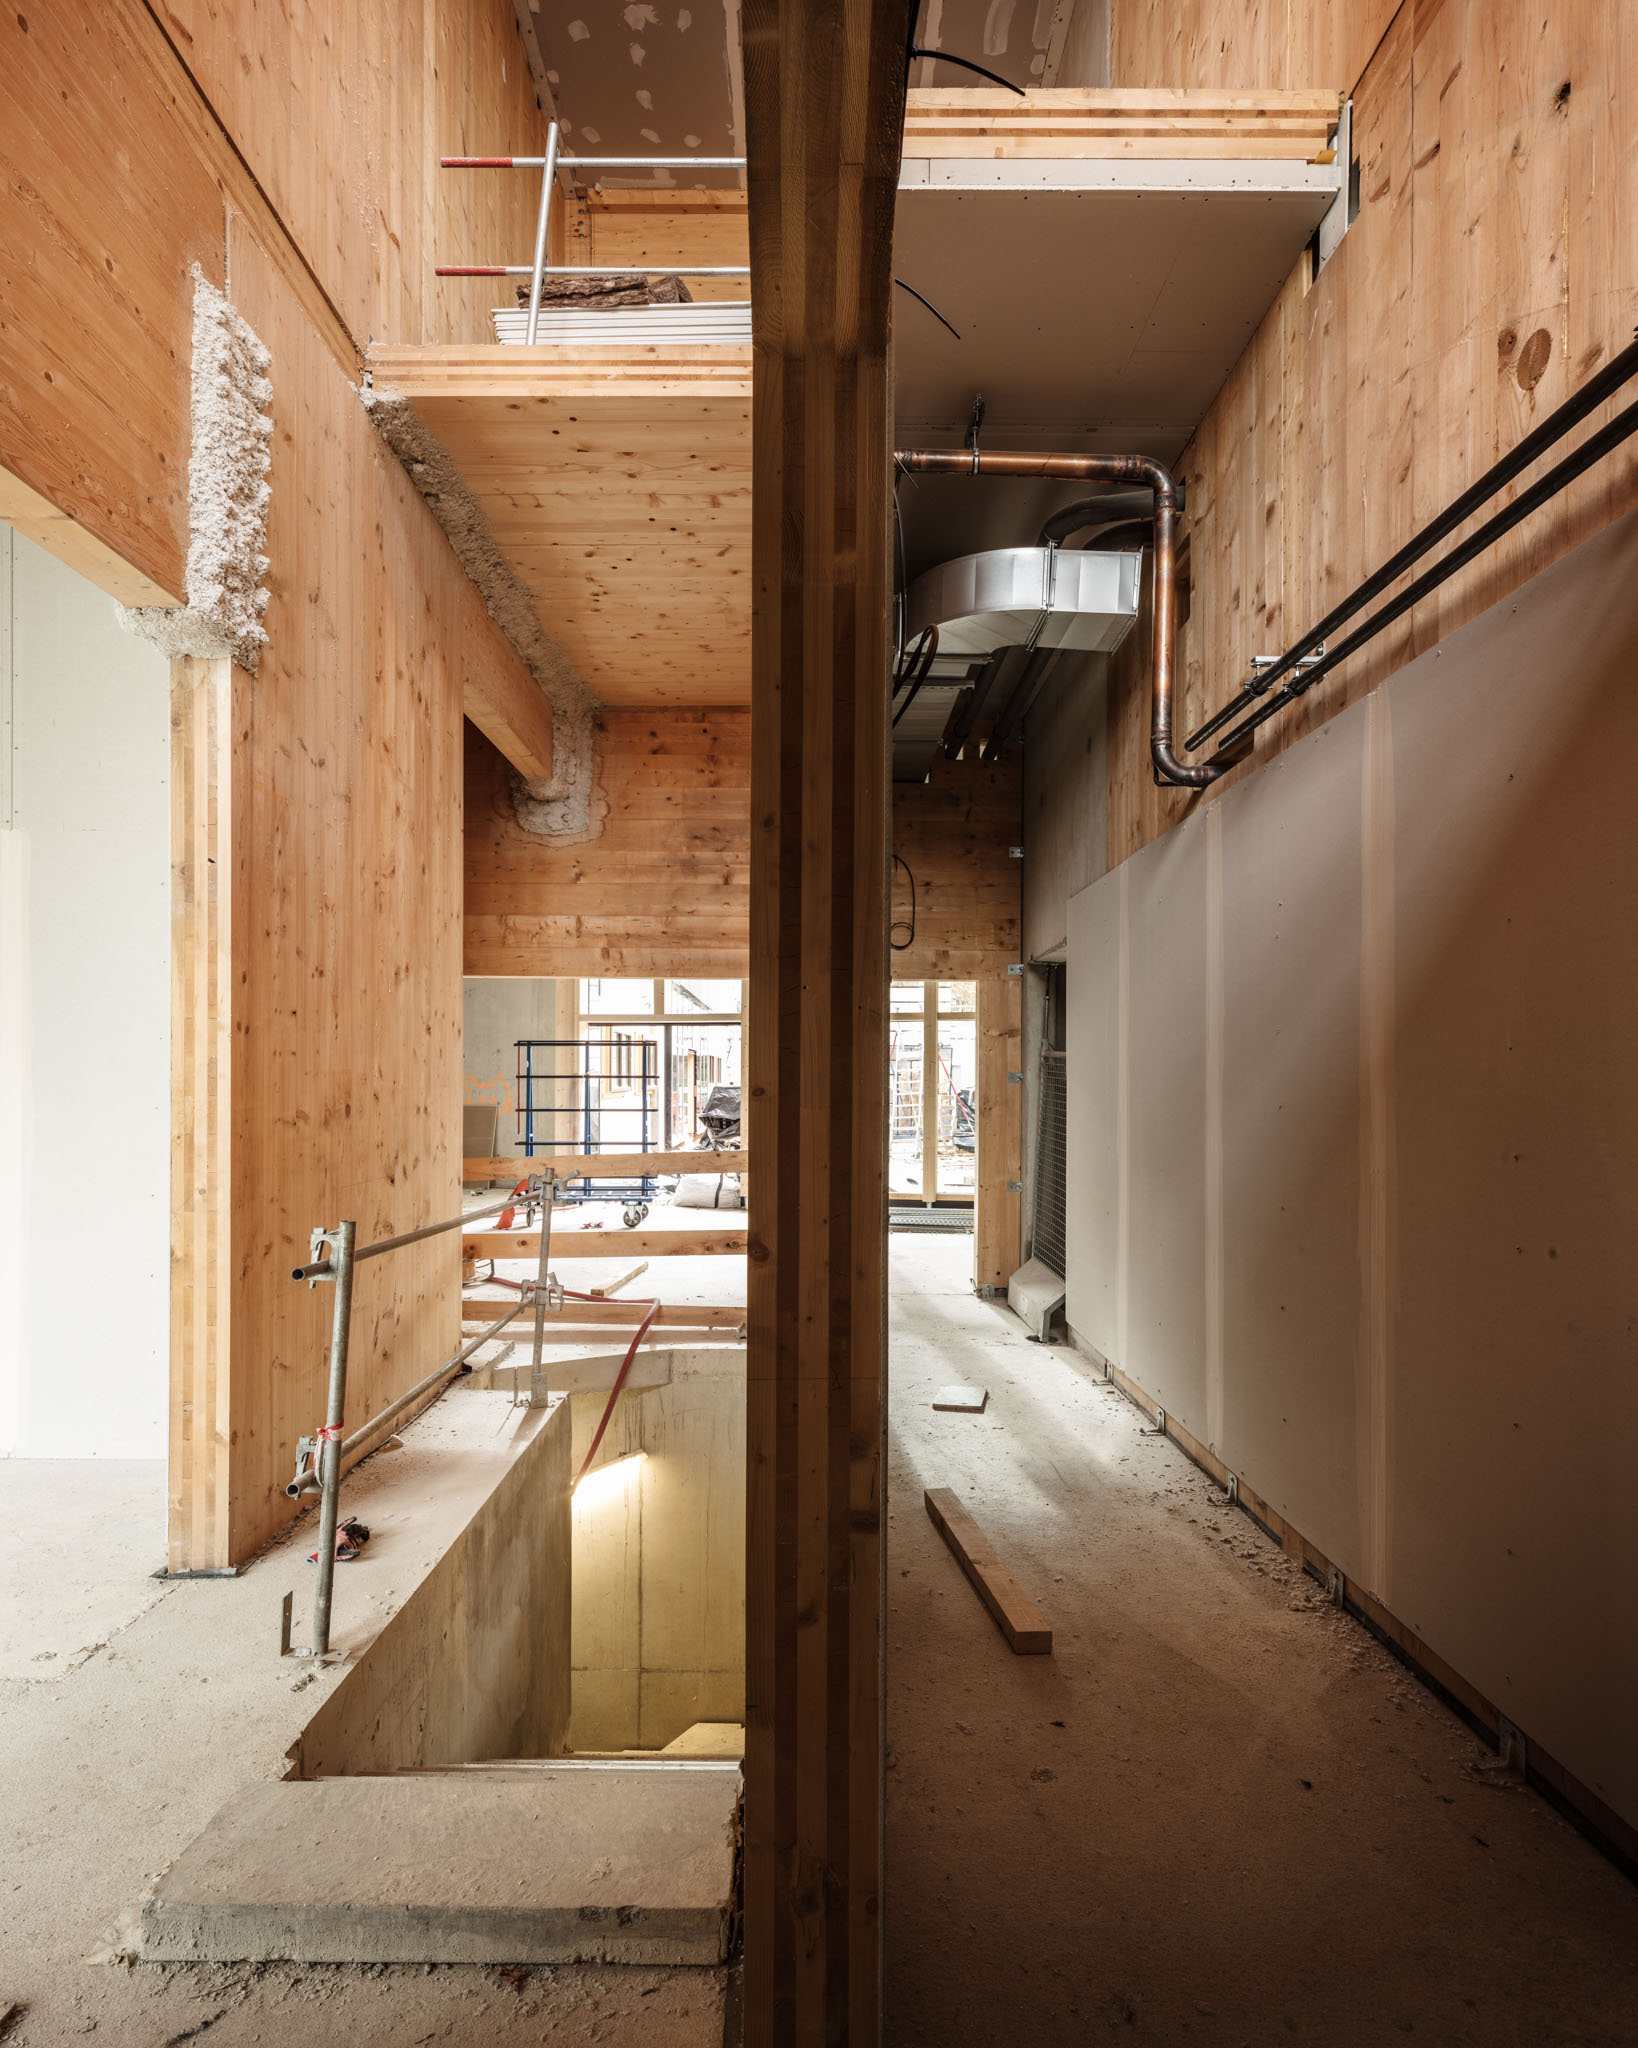 Ecole-Paris-Chantier-09.jpg